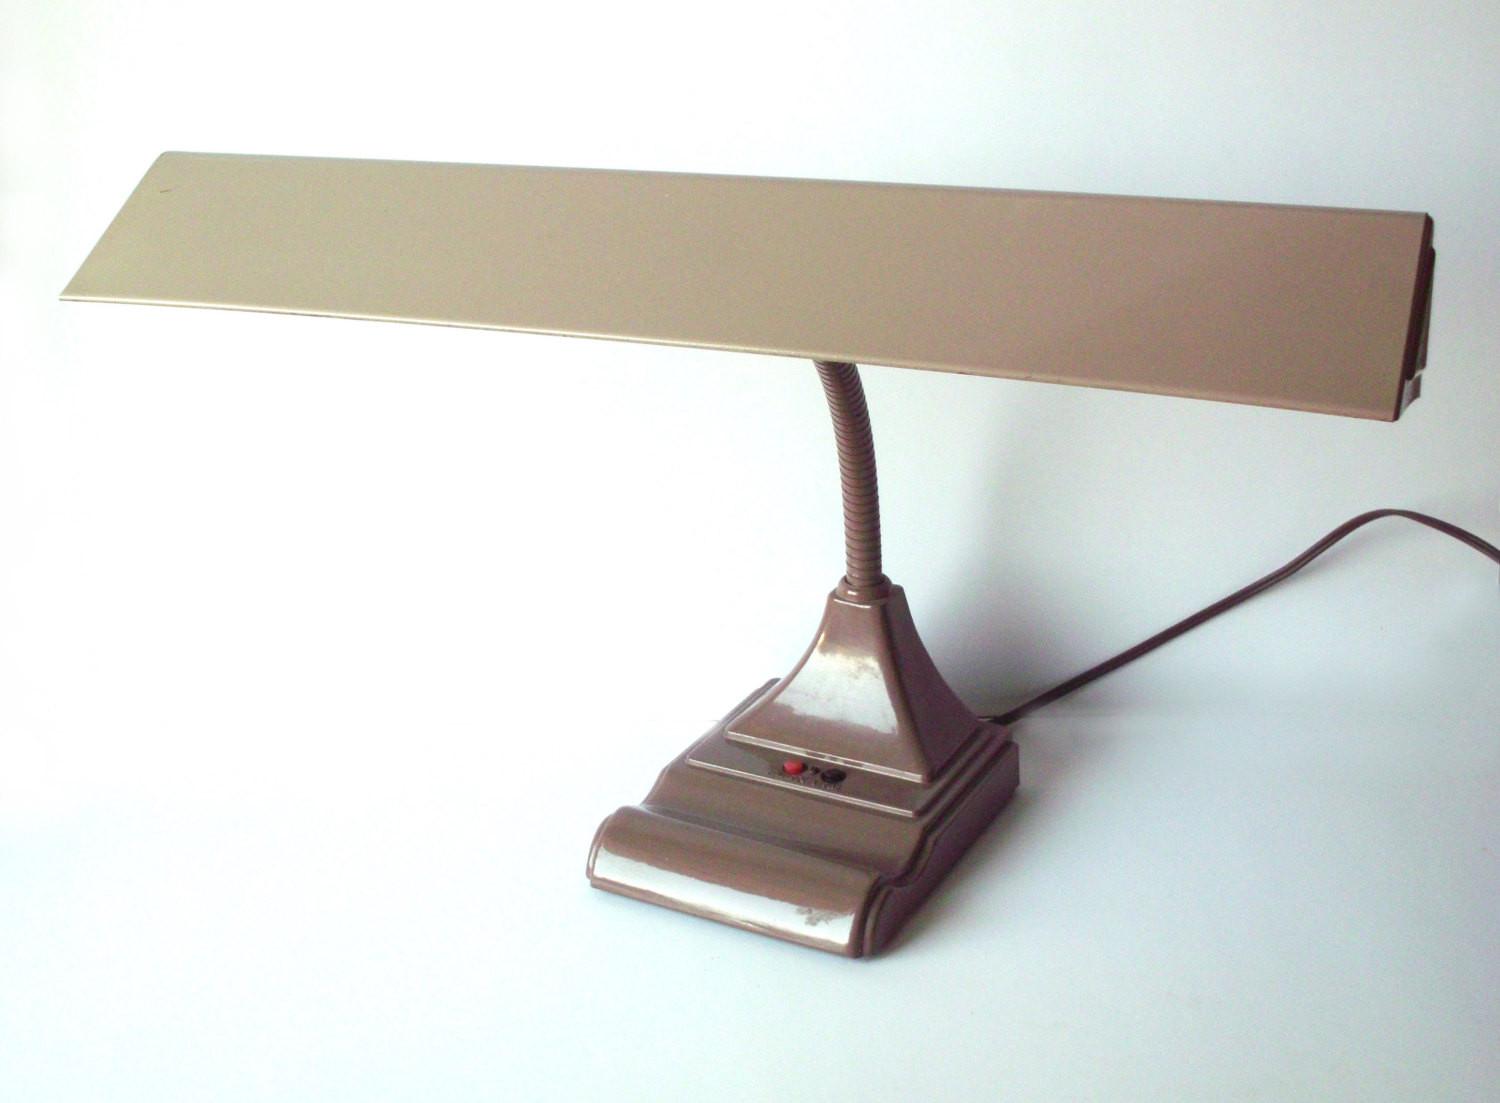 Best ideas about Fluorescent Desk Lamp . Save or Pin Vintage Art Specialty Co Fluorescent Desk Lamp Industrial Now.